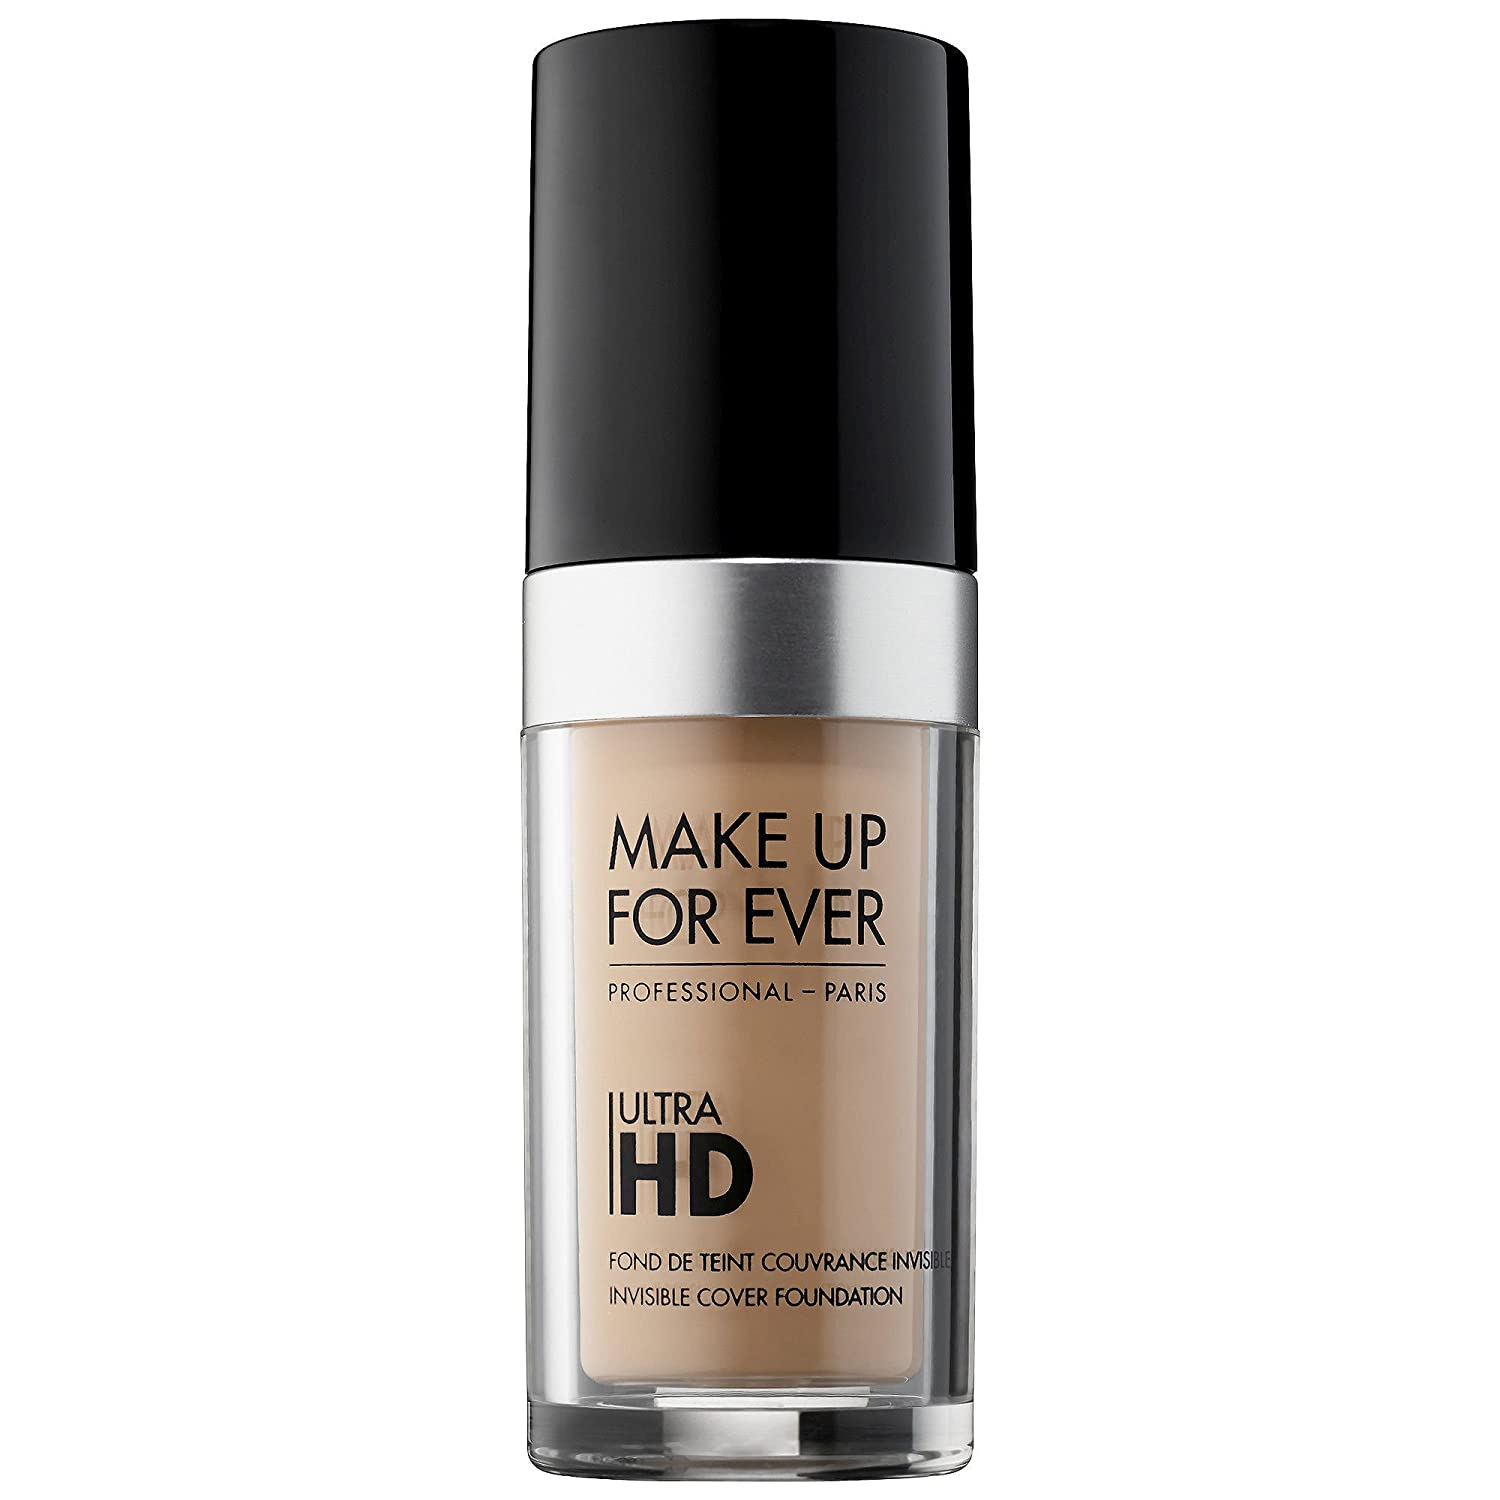 MAKE UP FOR EVER Ultra HD Foundation - Invisible Cover Foundation 30ml Y235 - Ivory Beige